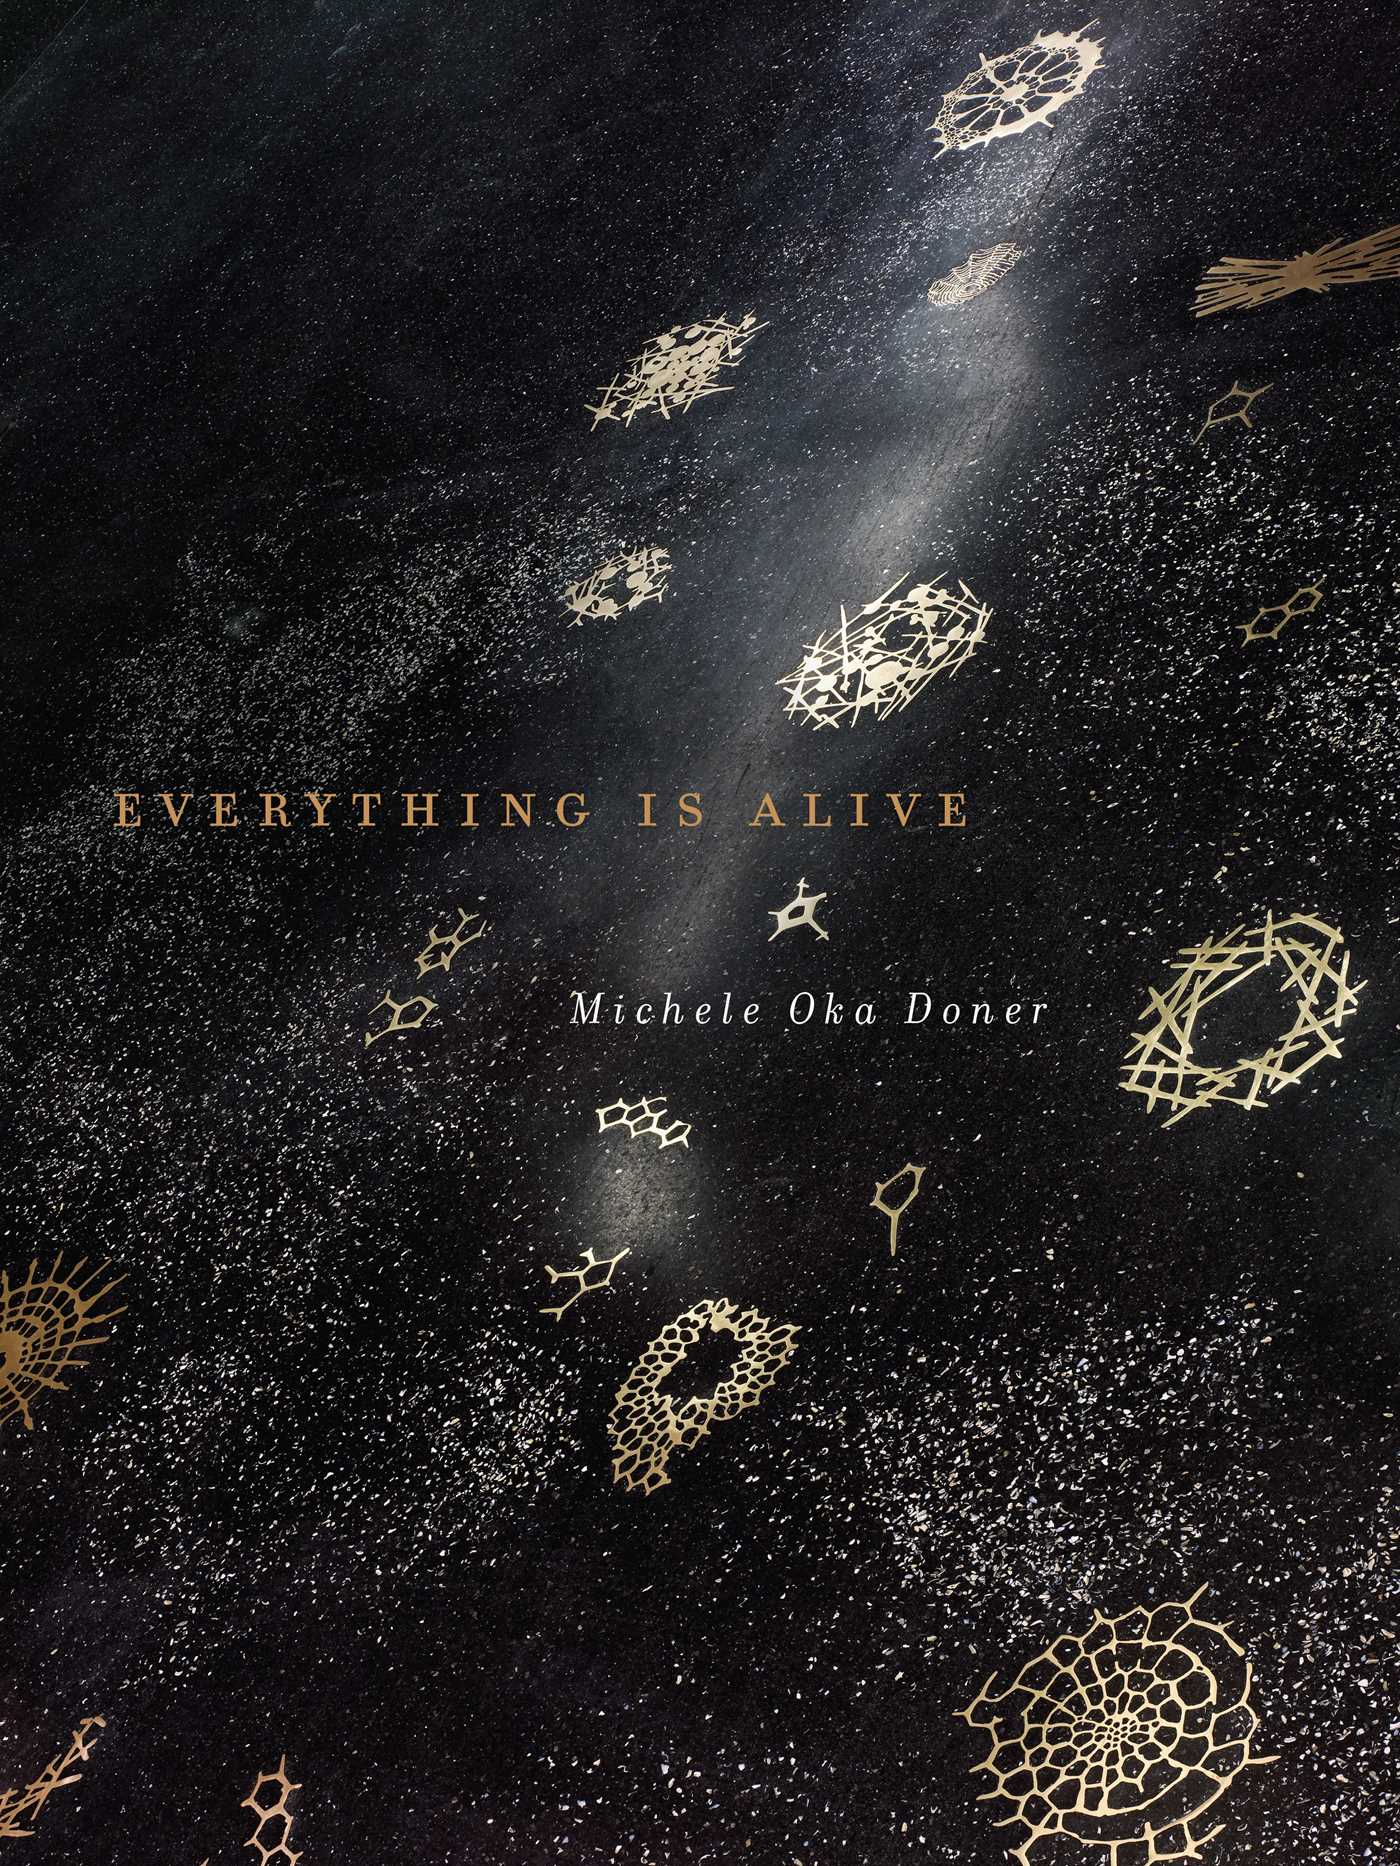 Everything is alive 9781682450840 hr